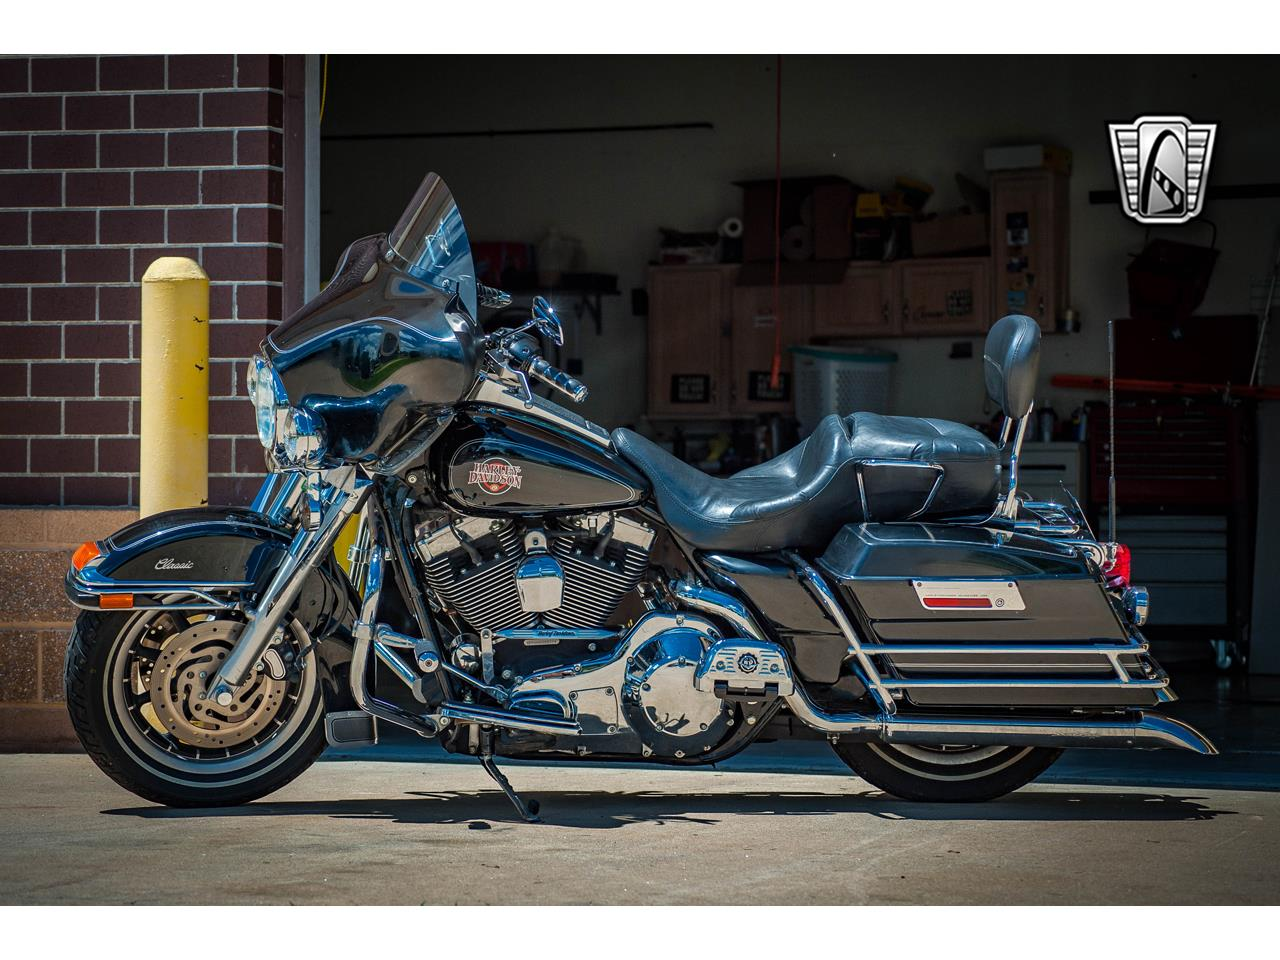 2004 Harley-Davidson Motorcycle for sale in O'Fallon, IL – photo 43